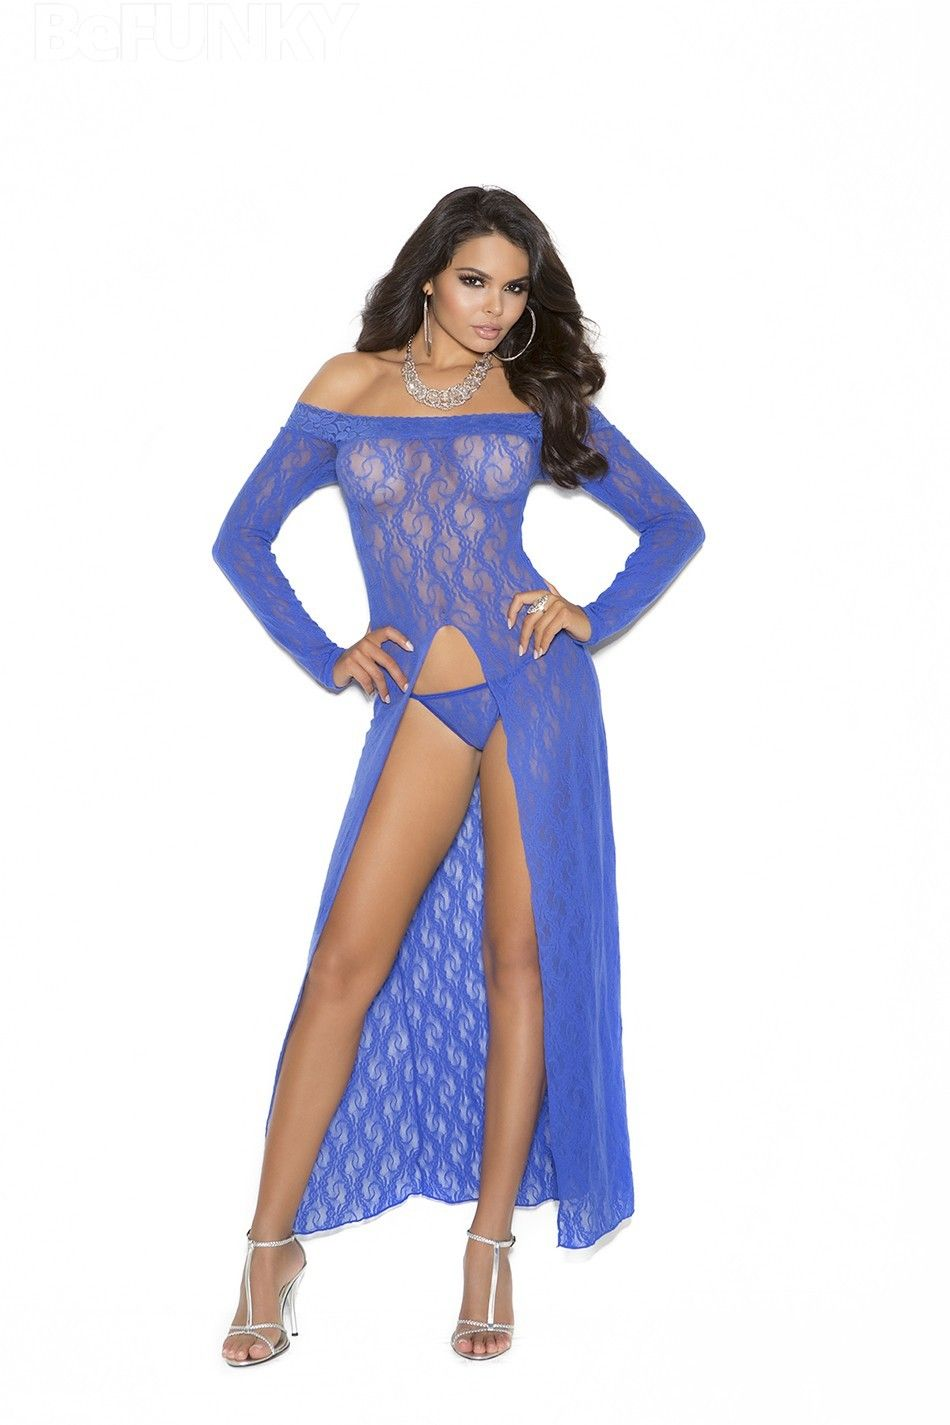 Long sleeve lace dress with front sash and thong